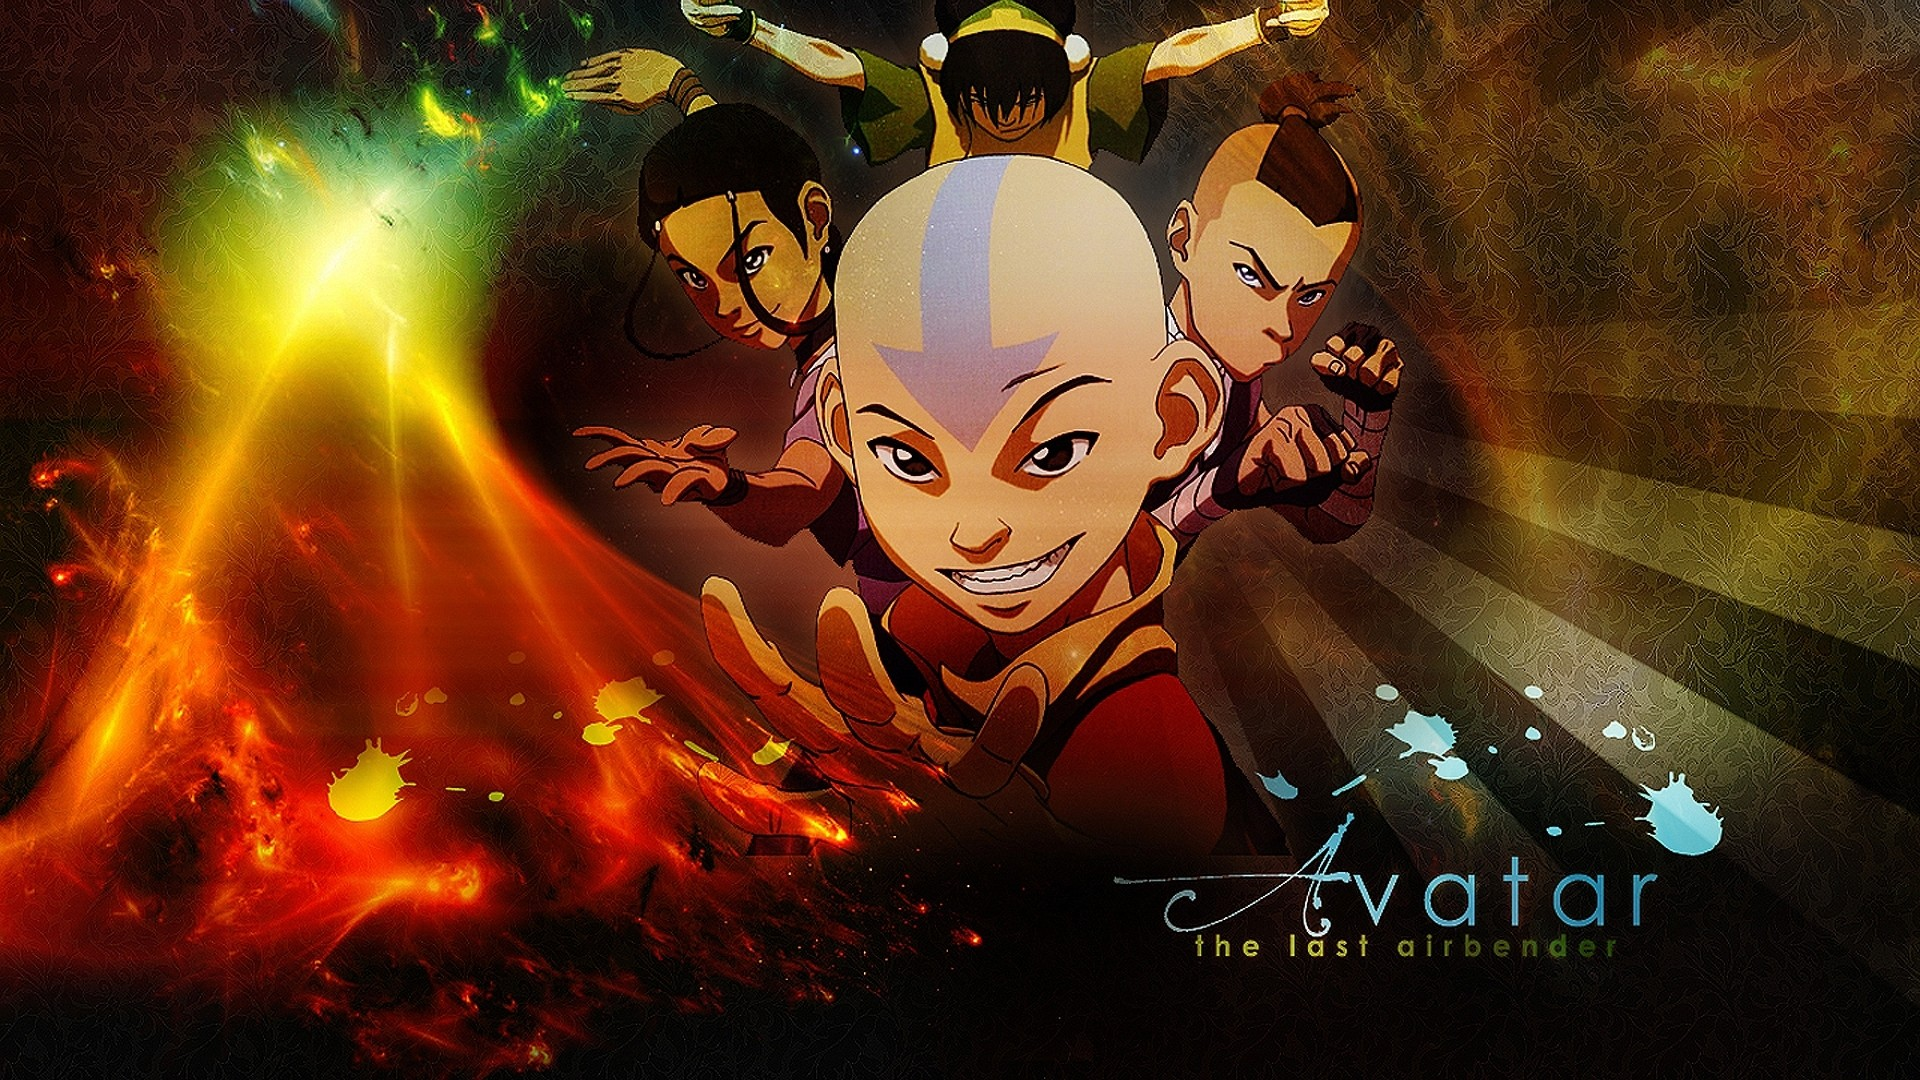 Avatar The Last Airbender Free Wallpaper and Background